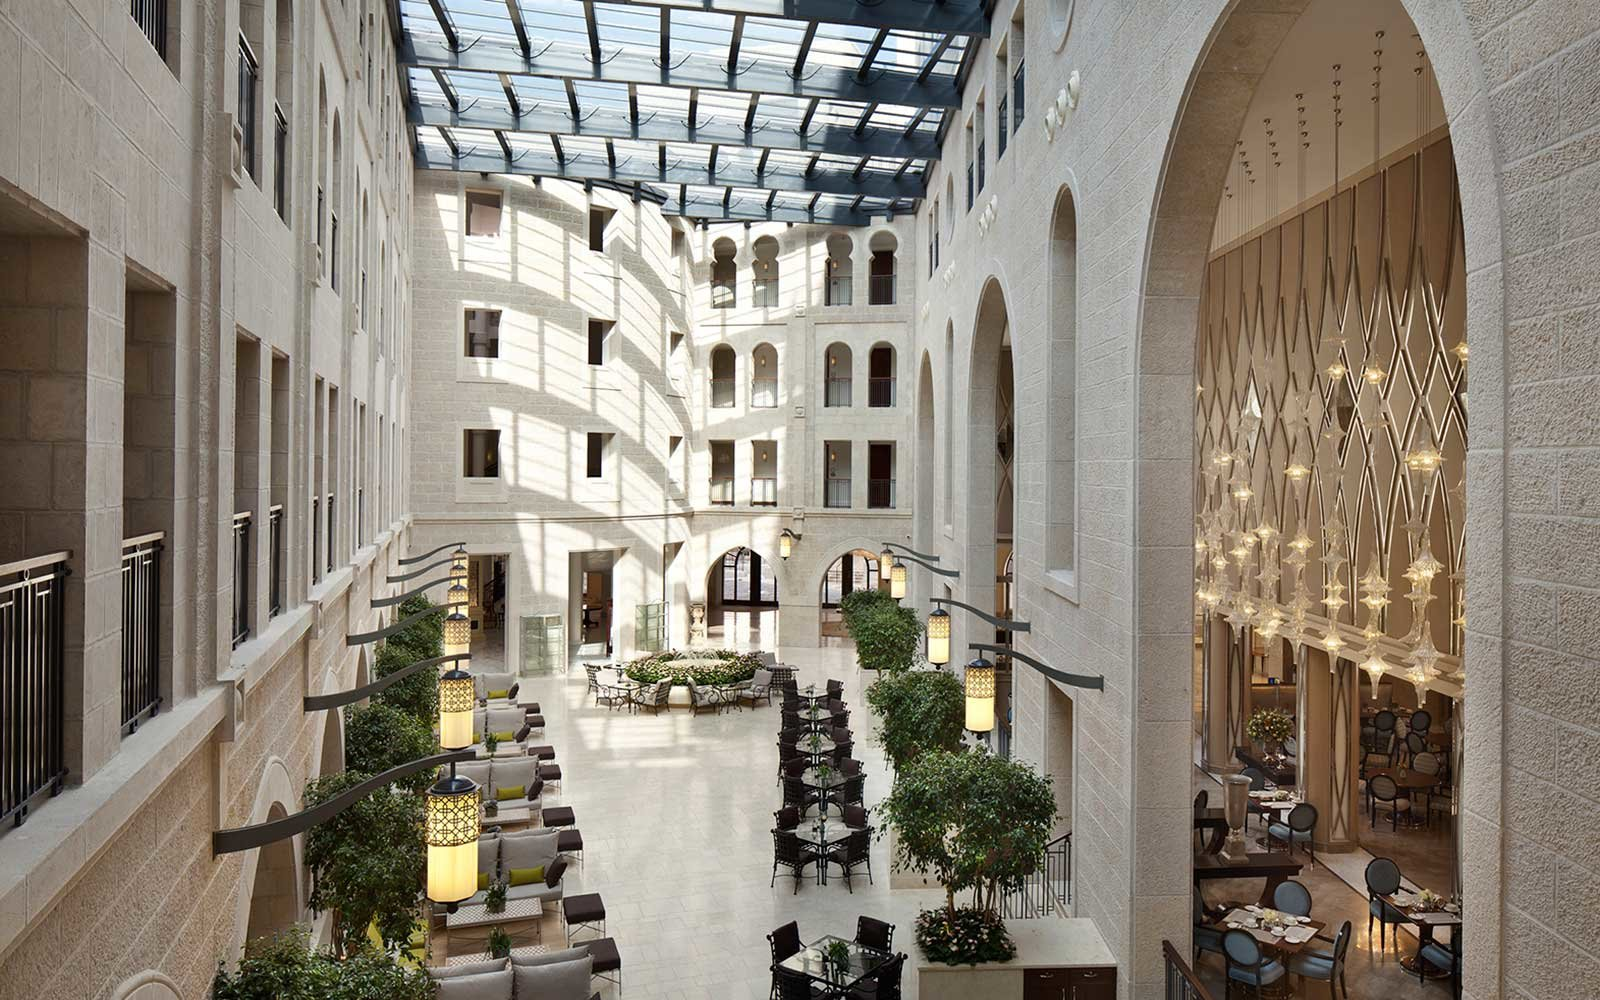 Waldorf Astoria Jerusalem Hotel in North Africa and Middle East